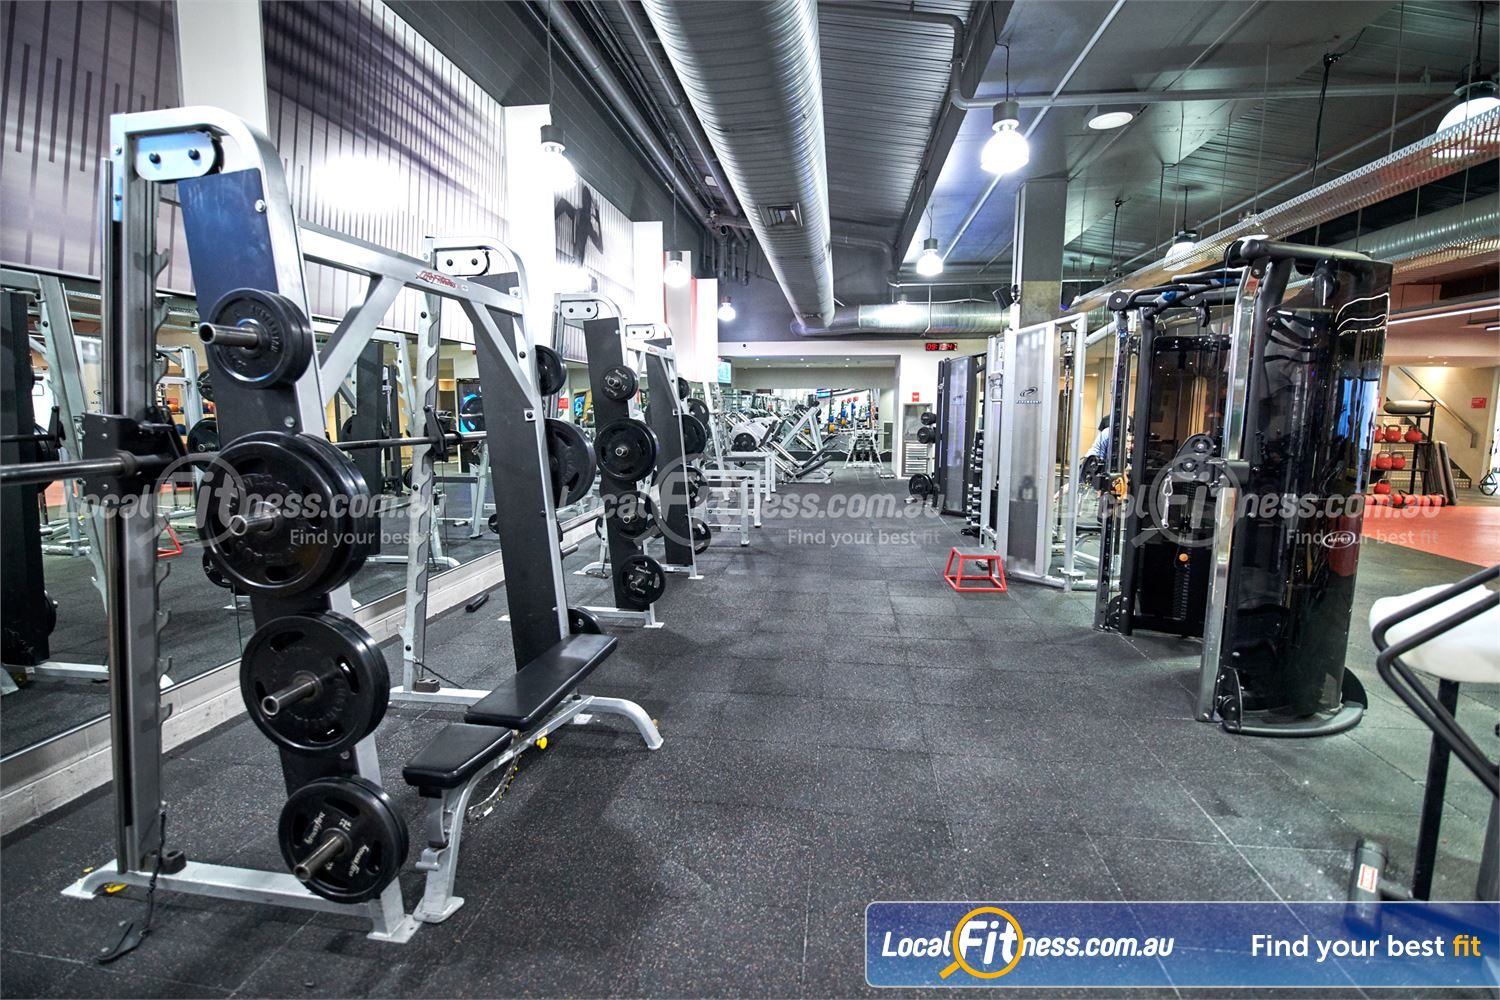 Fitness First Victoria Gardens Richmond Our free-weights area includes multiple smith machines and squat racks.